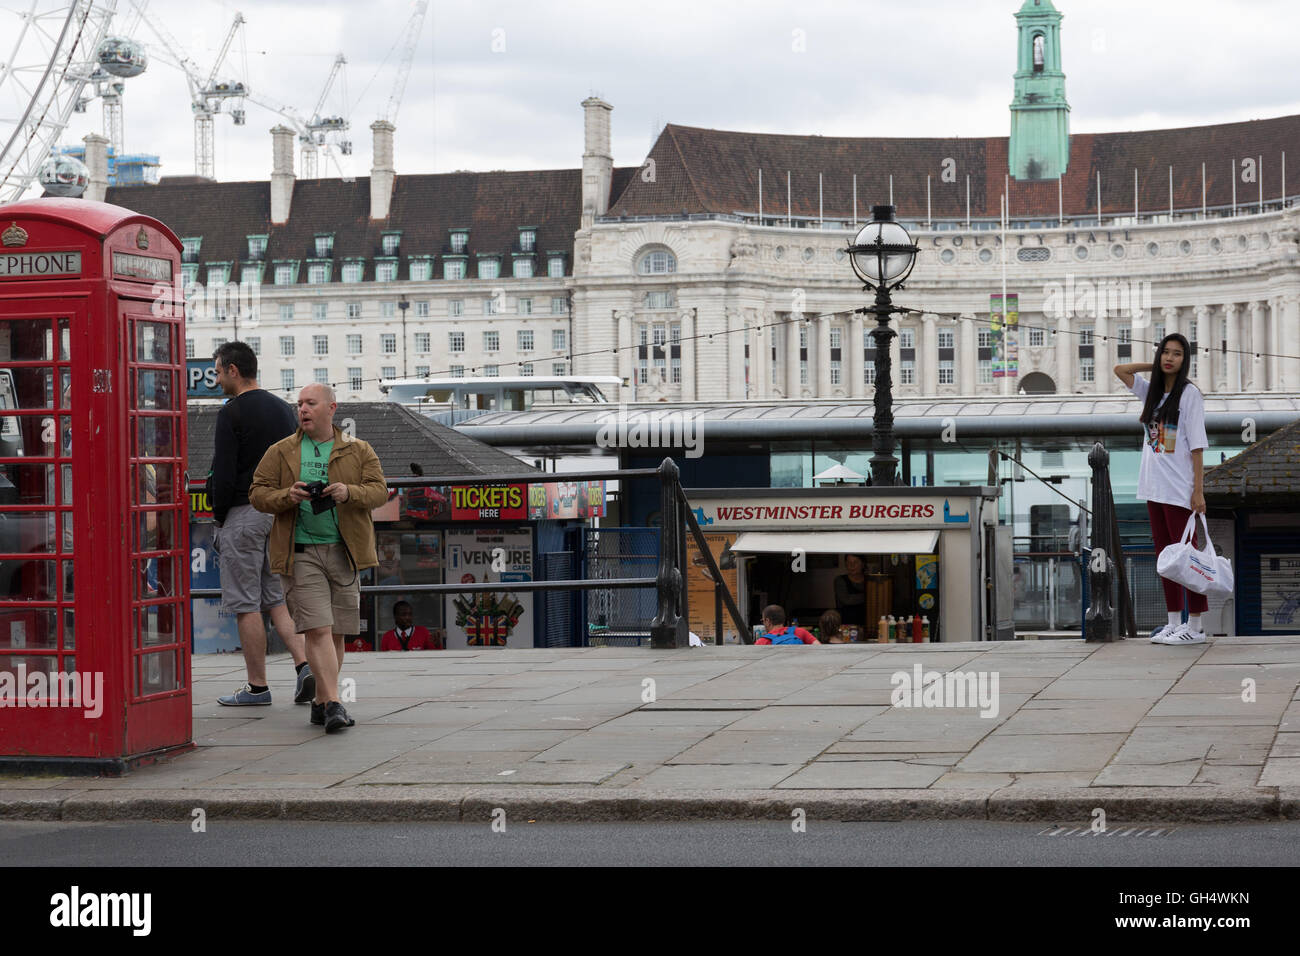 Victoria Embankment London Stock Photo 113819321 Alamy